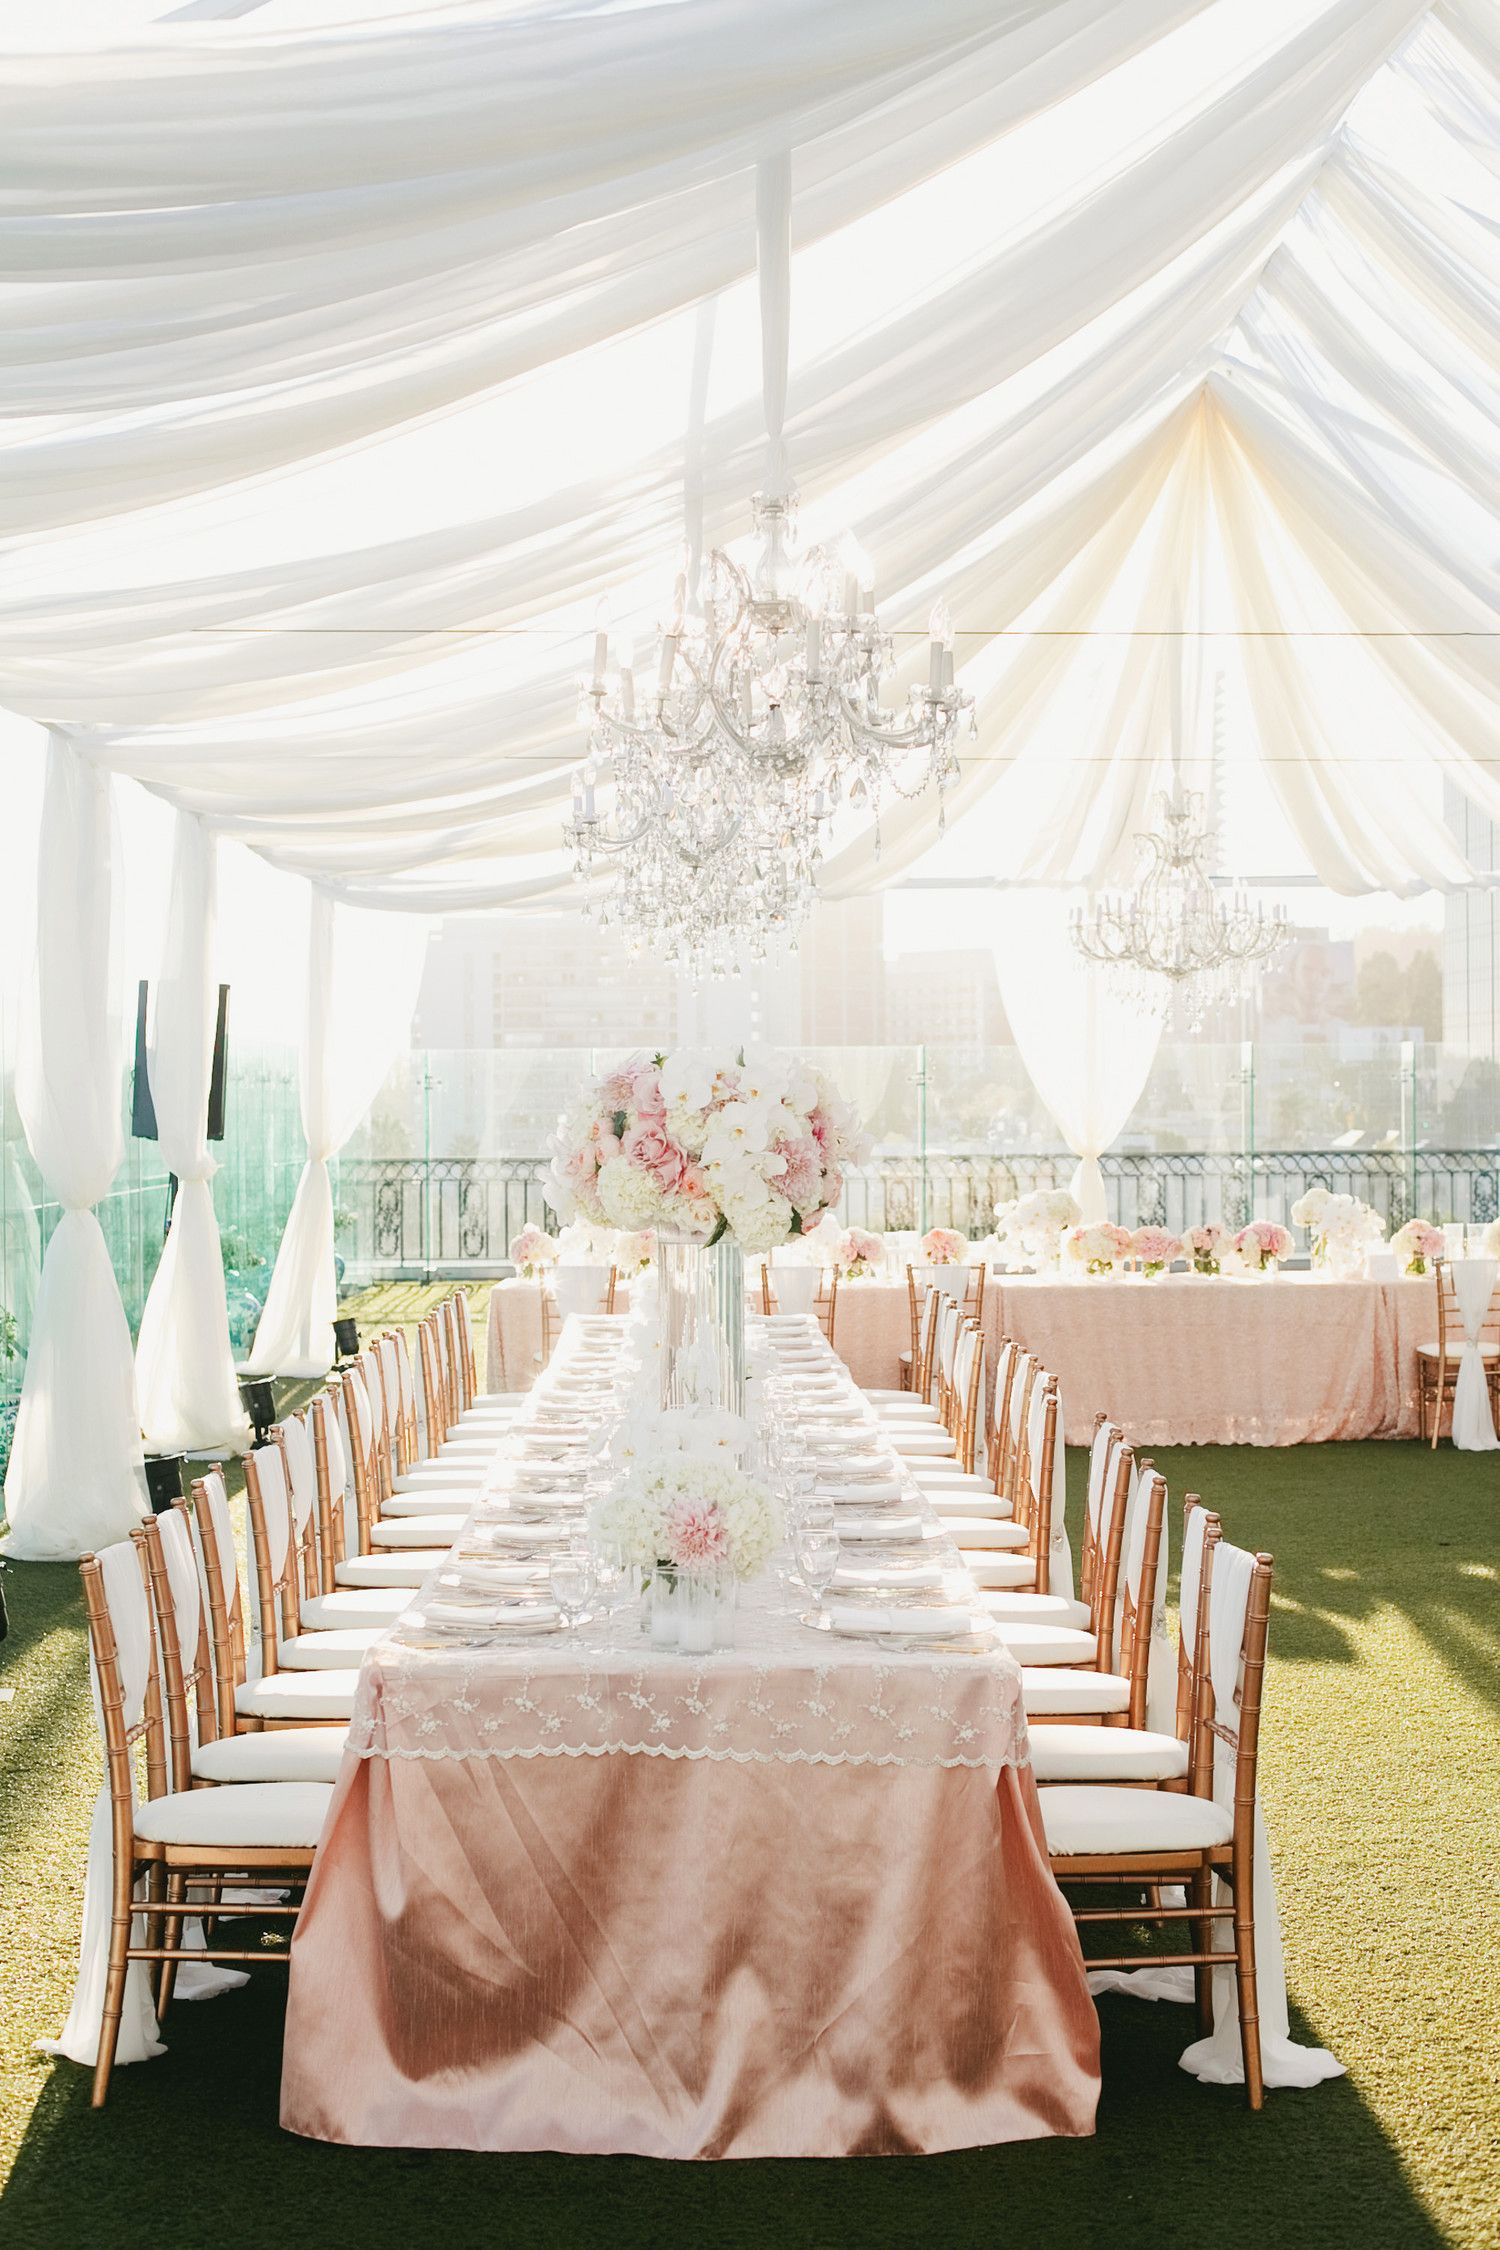 28 Tent Decorating Ideas That Will Upgrade Your Wedding Reception Pink And Gold Wedding Wedding Tent Decorations Tent Decorations